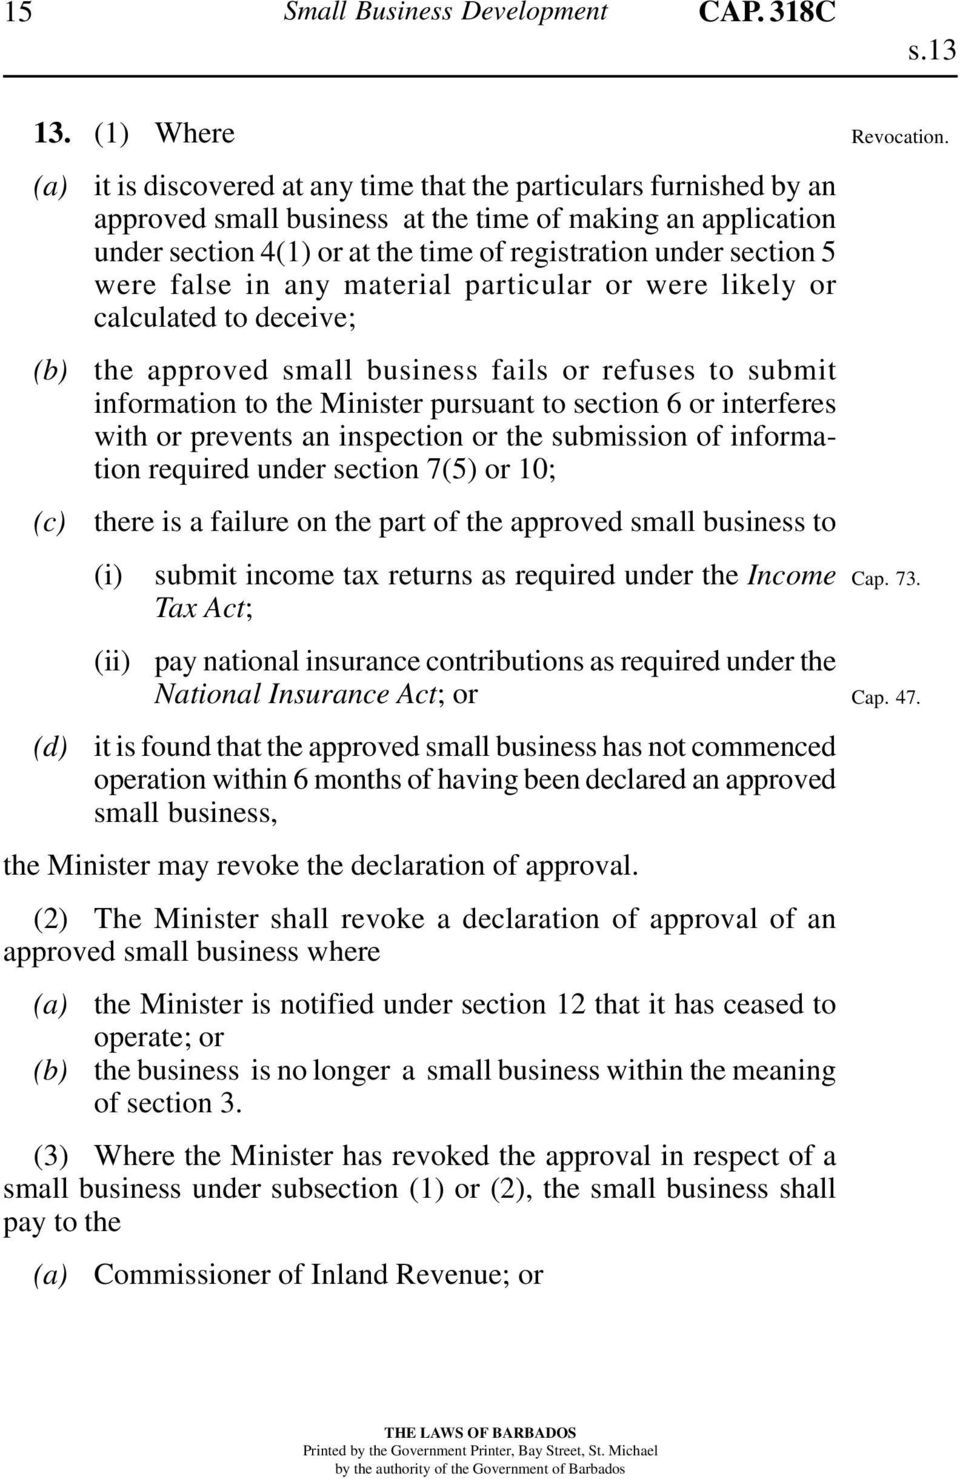 under section 5 were false in any material particular or were likely or calculated to deceive; the approved small business fails or refuses to submit information to the Minister pursuant to section 6